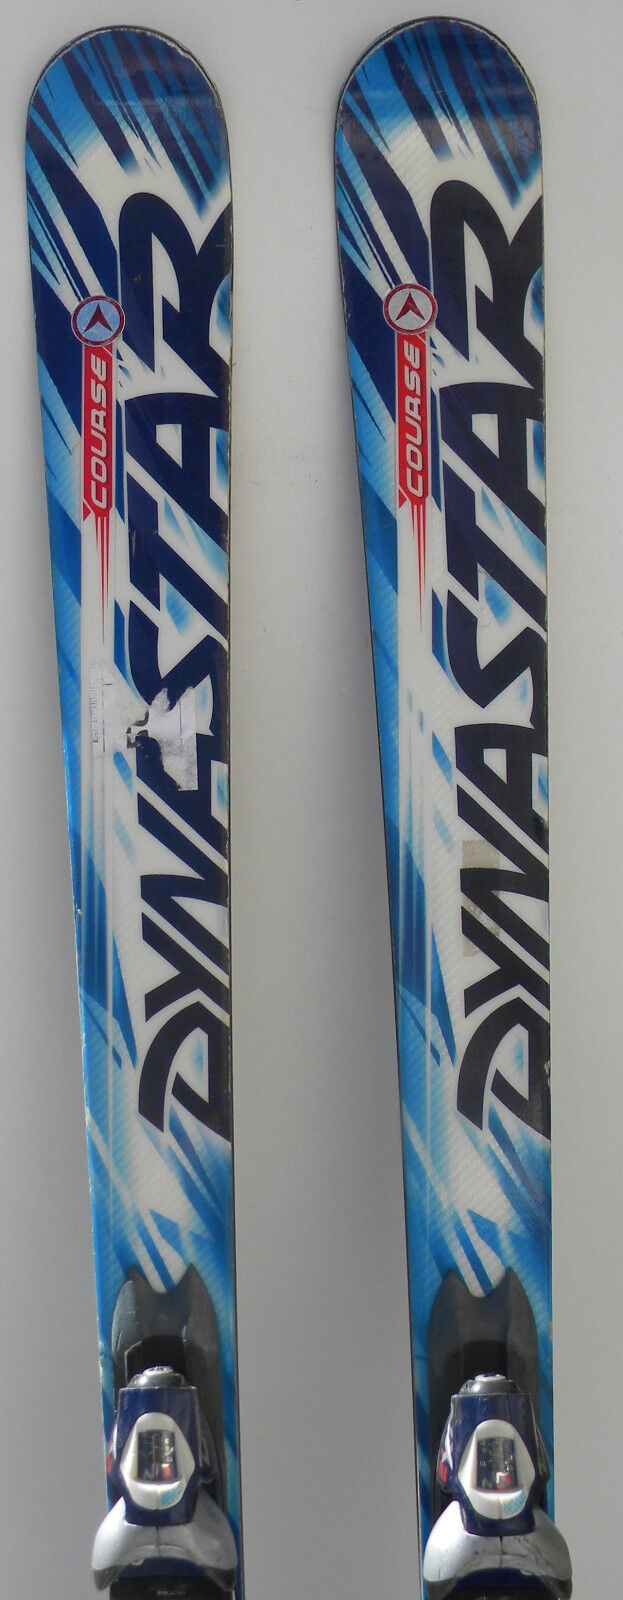 Skis parabolic  used DYNASTAR Speed Race + Bindings - 178cm   184cm  find your favorite here